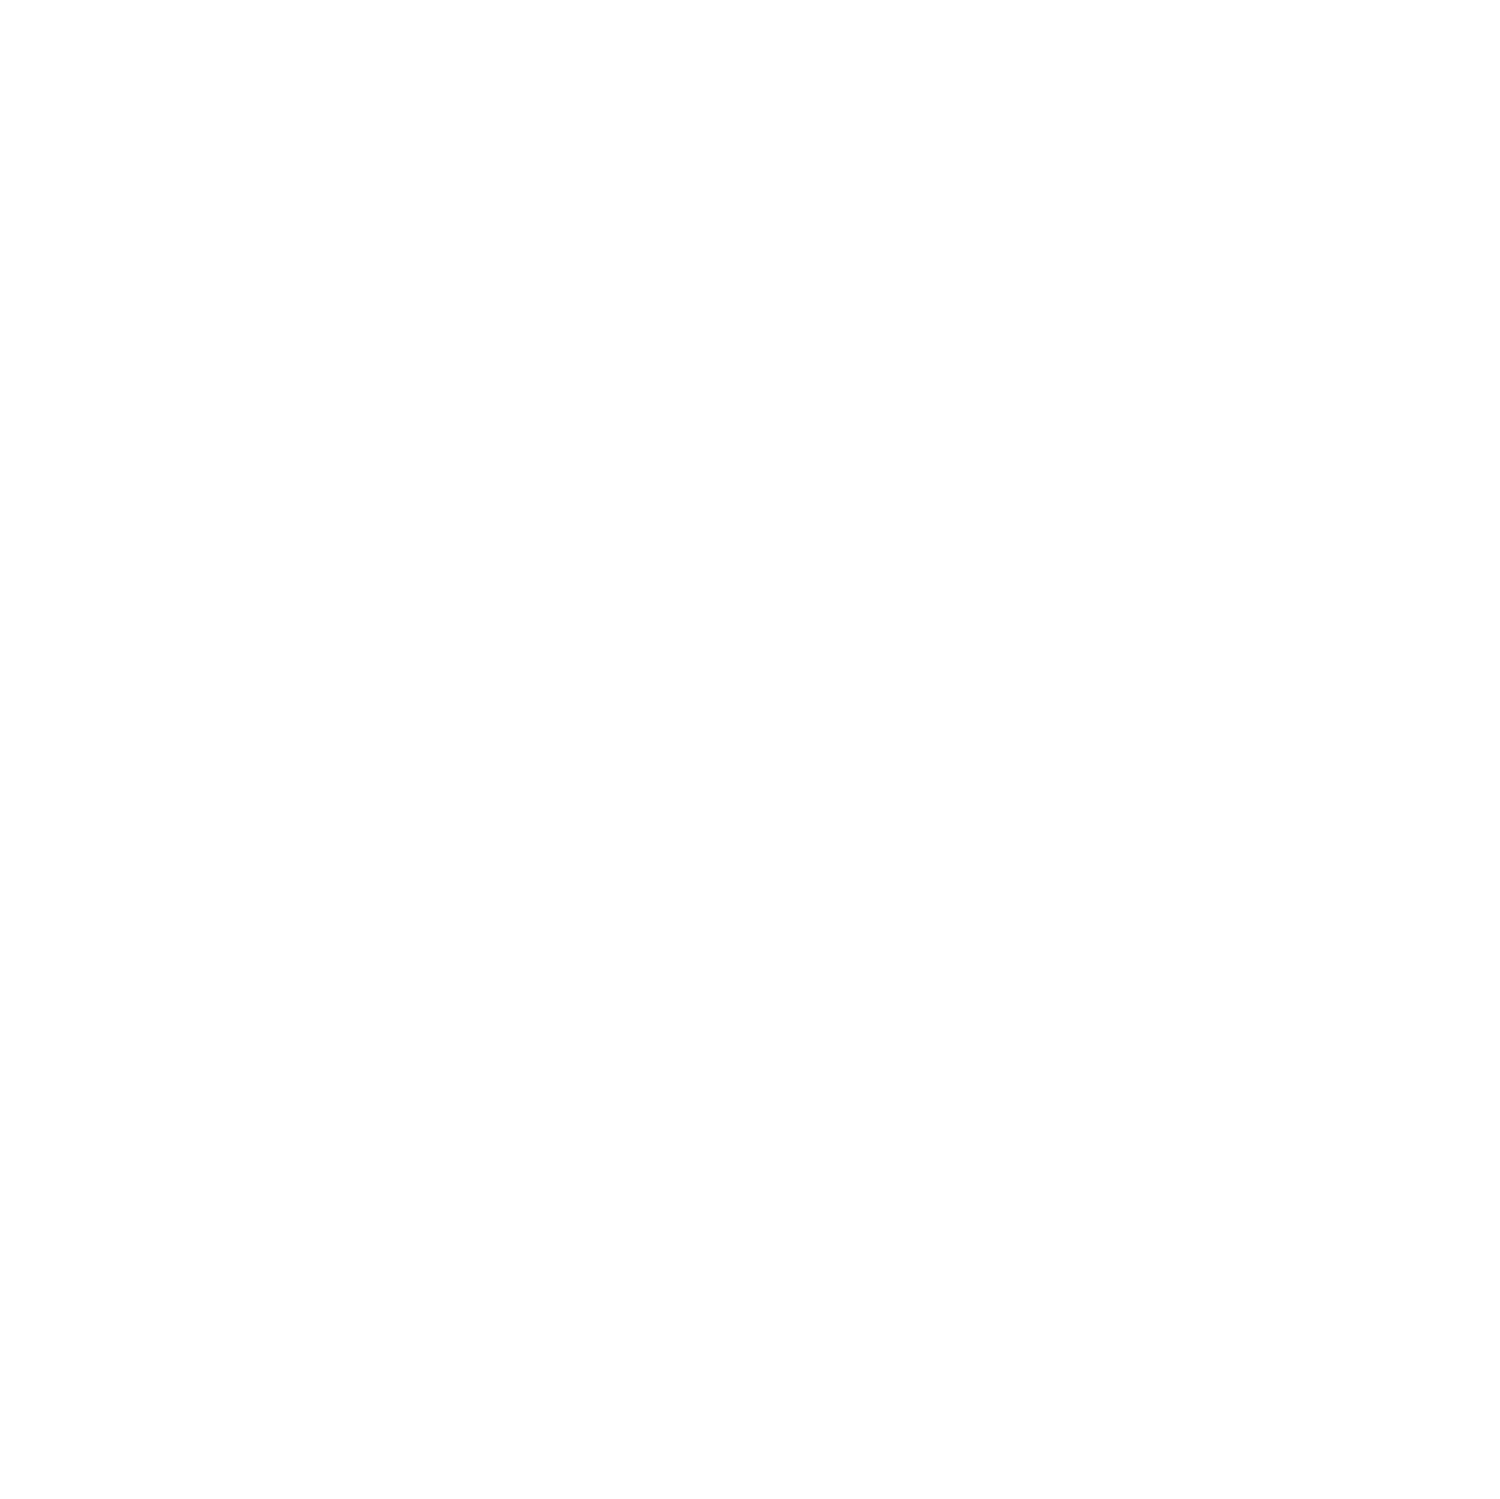 Trishan Patel Coaching